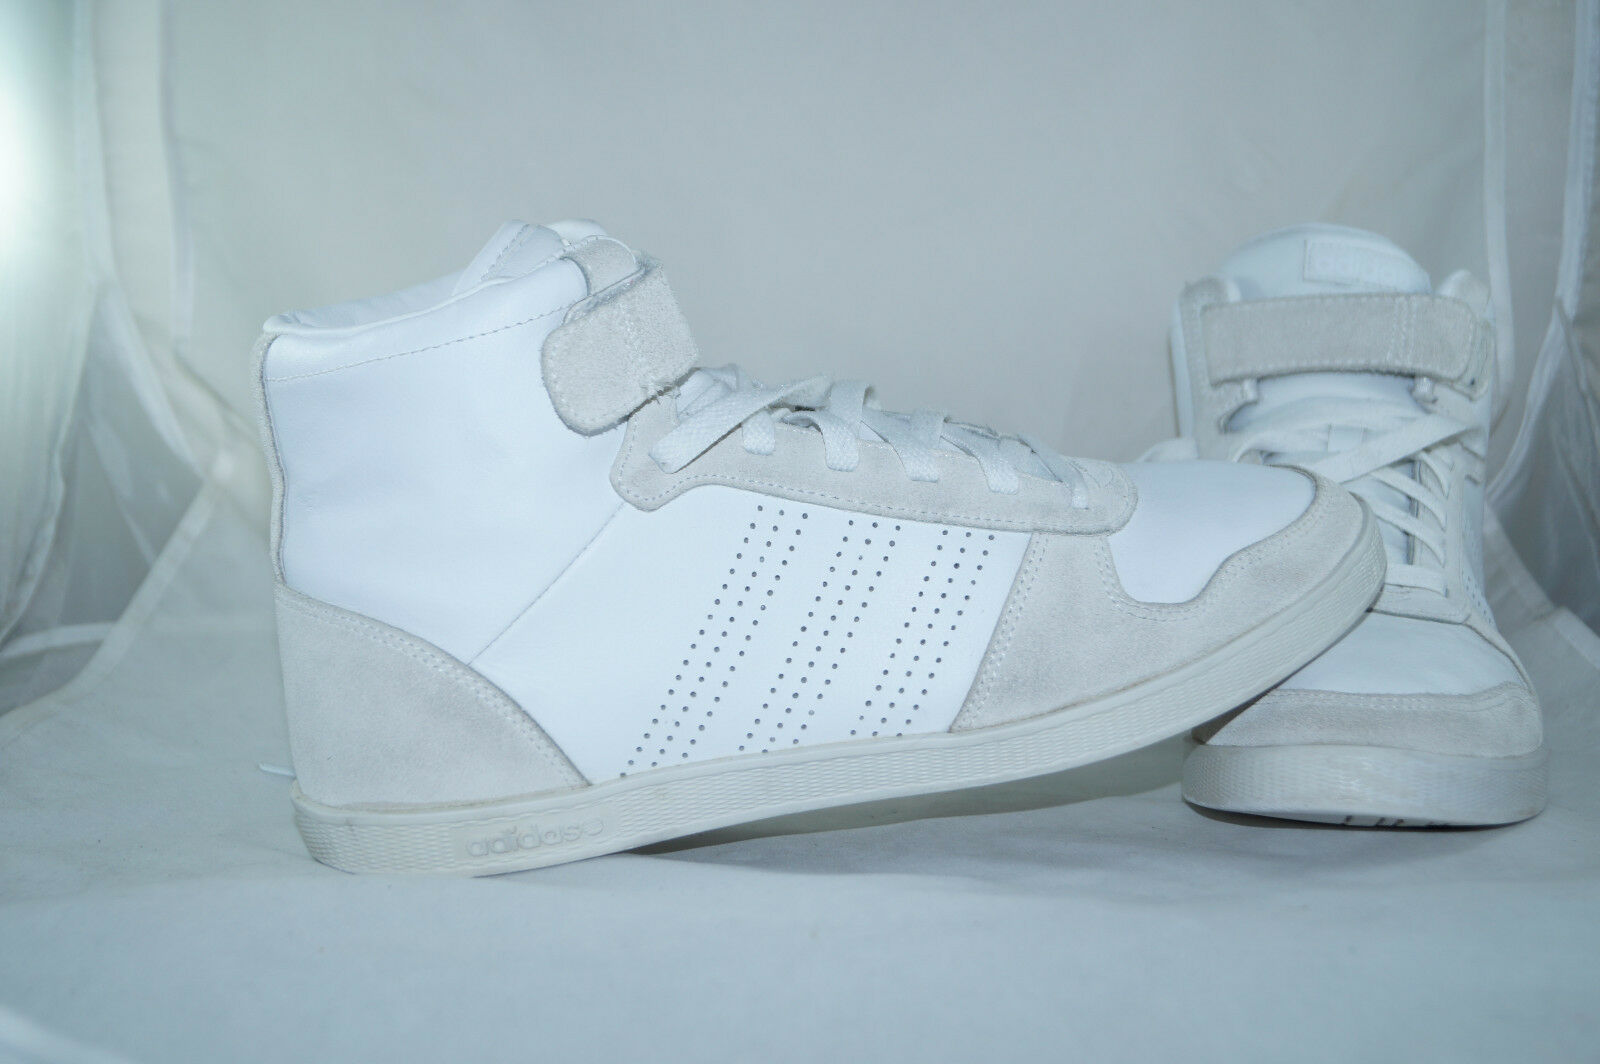 Zapatos casuales salvajes Adidas neo bbpure High Tops Weiss Trainers gr:43 1/3 blanco